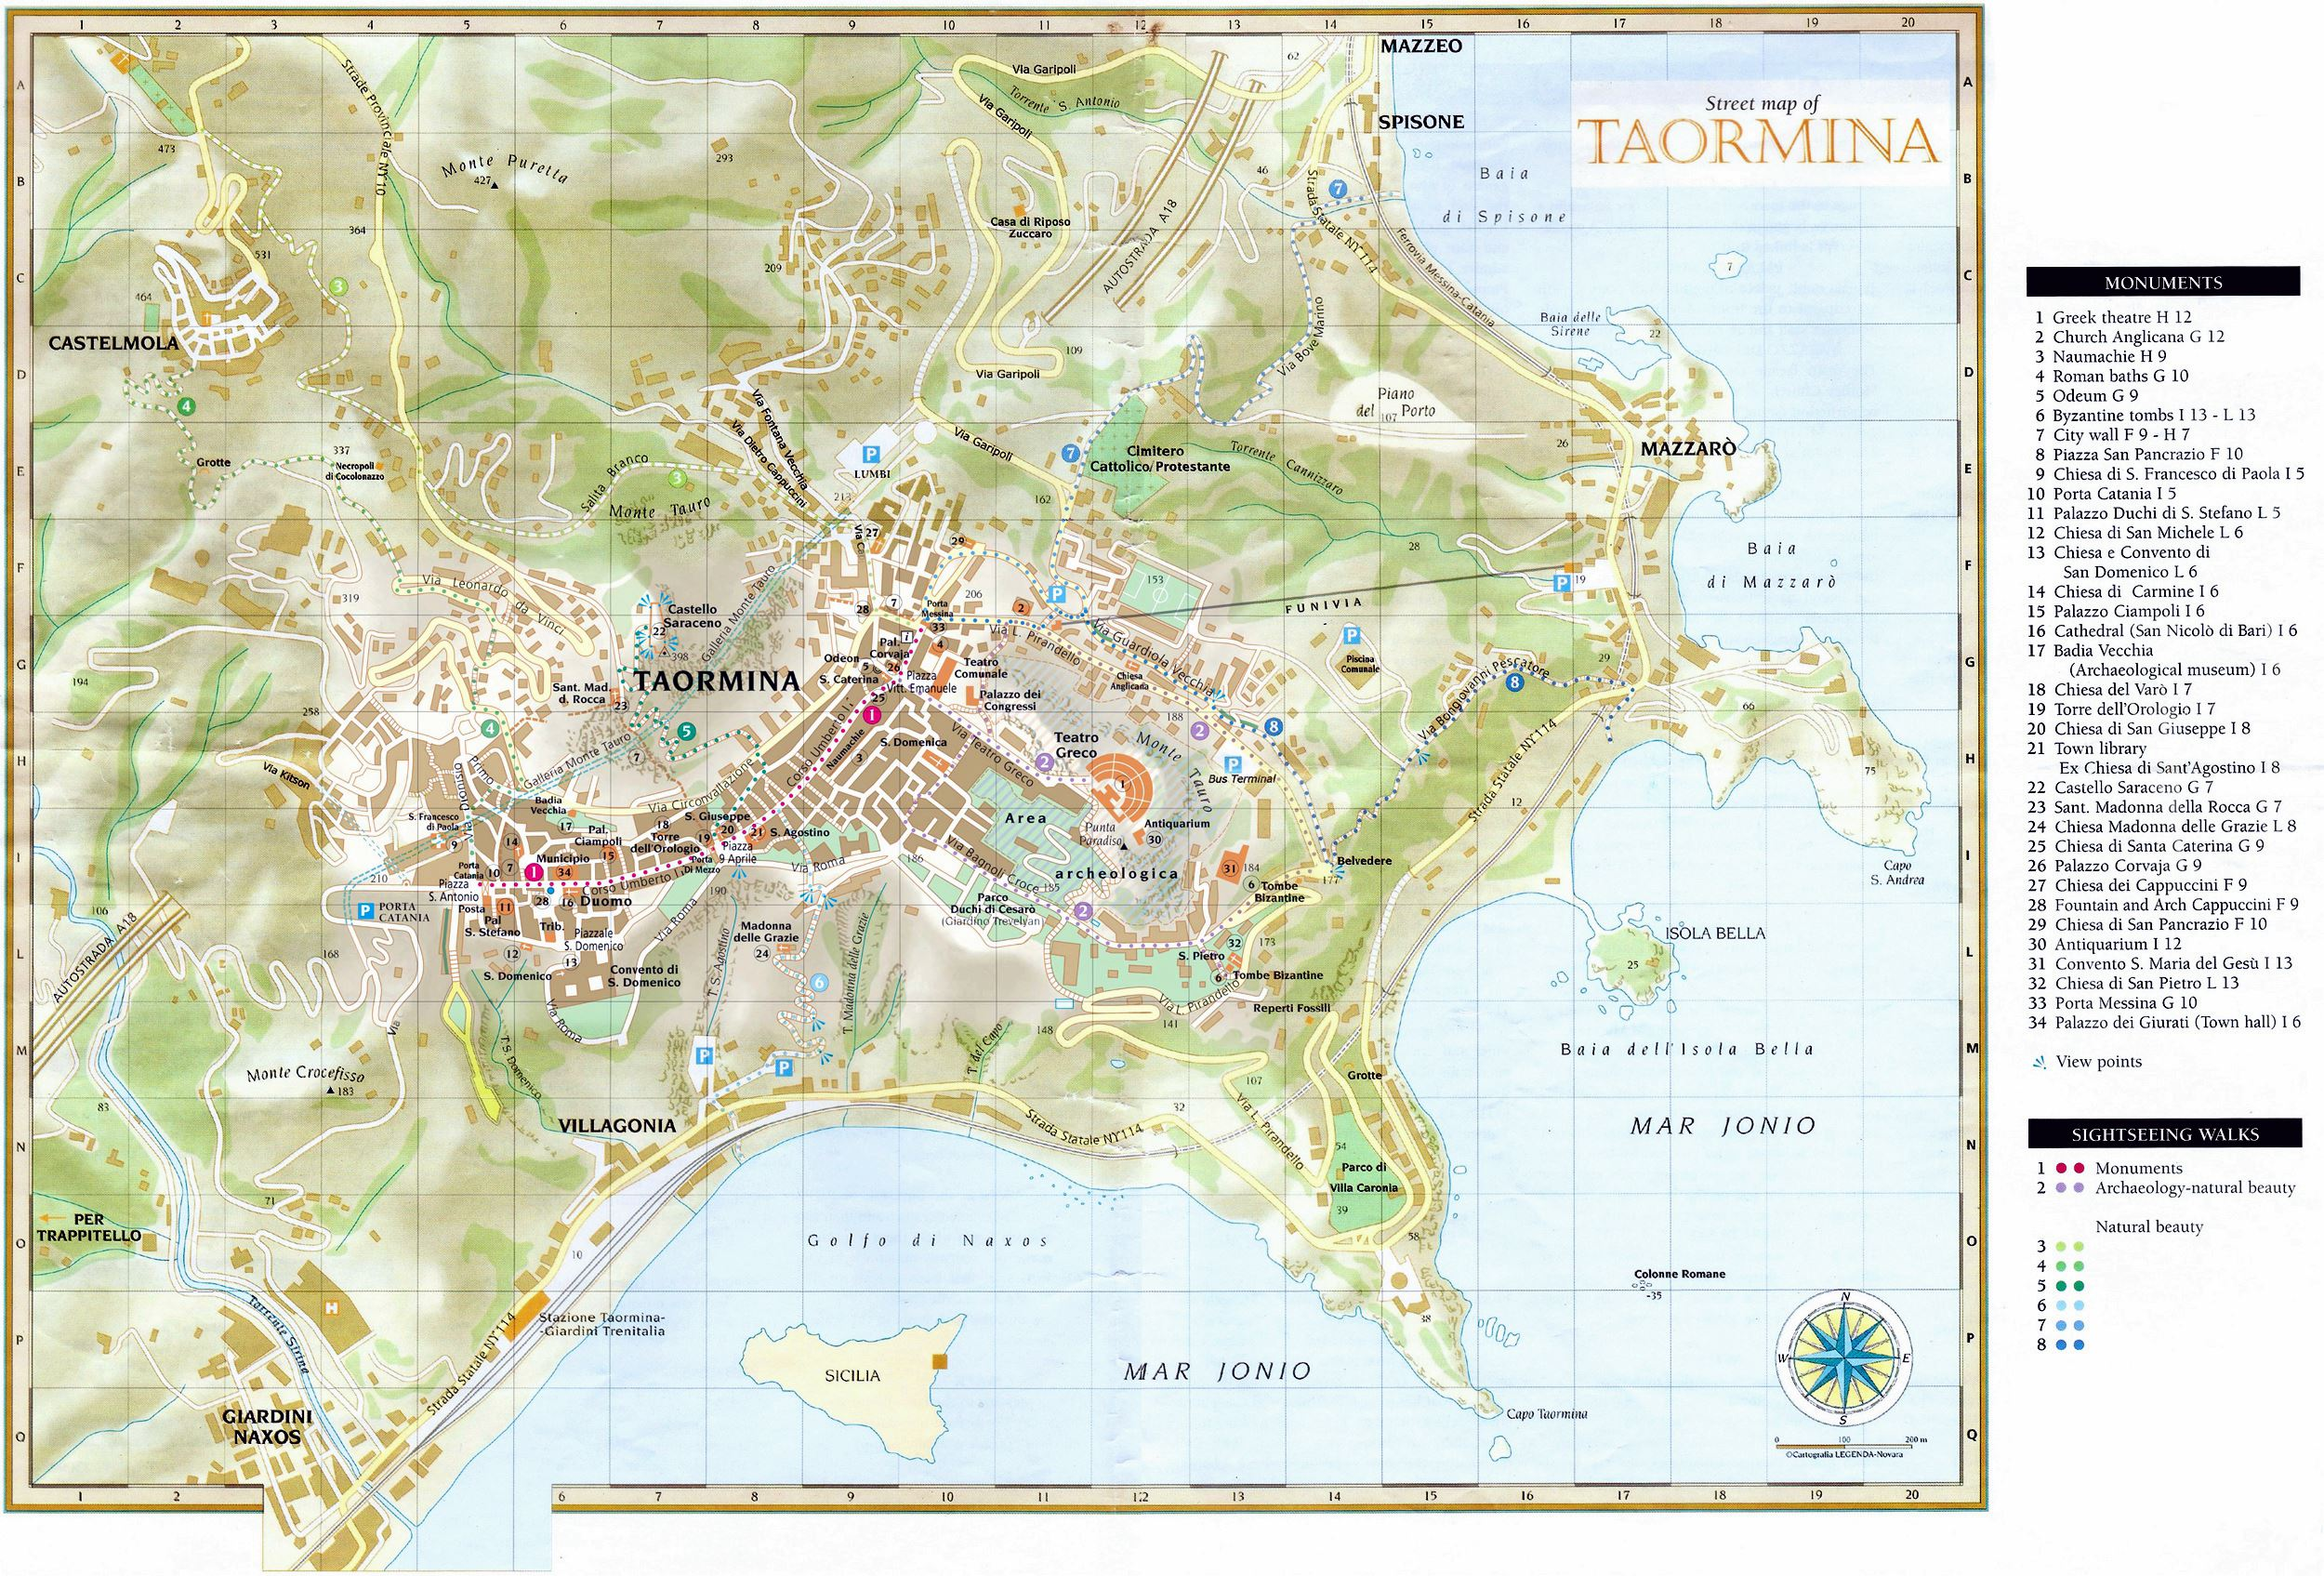 Map Of Sicily Taormina Large Taormina Maps for Free Download and Print | High Resolution